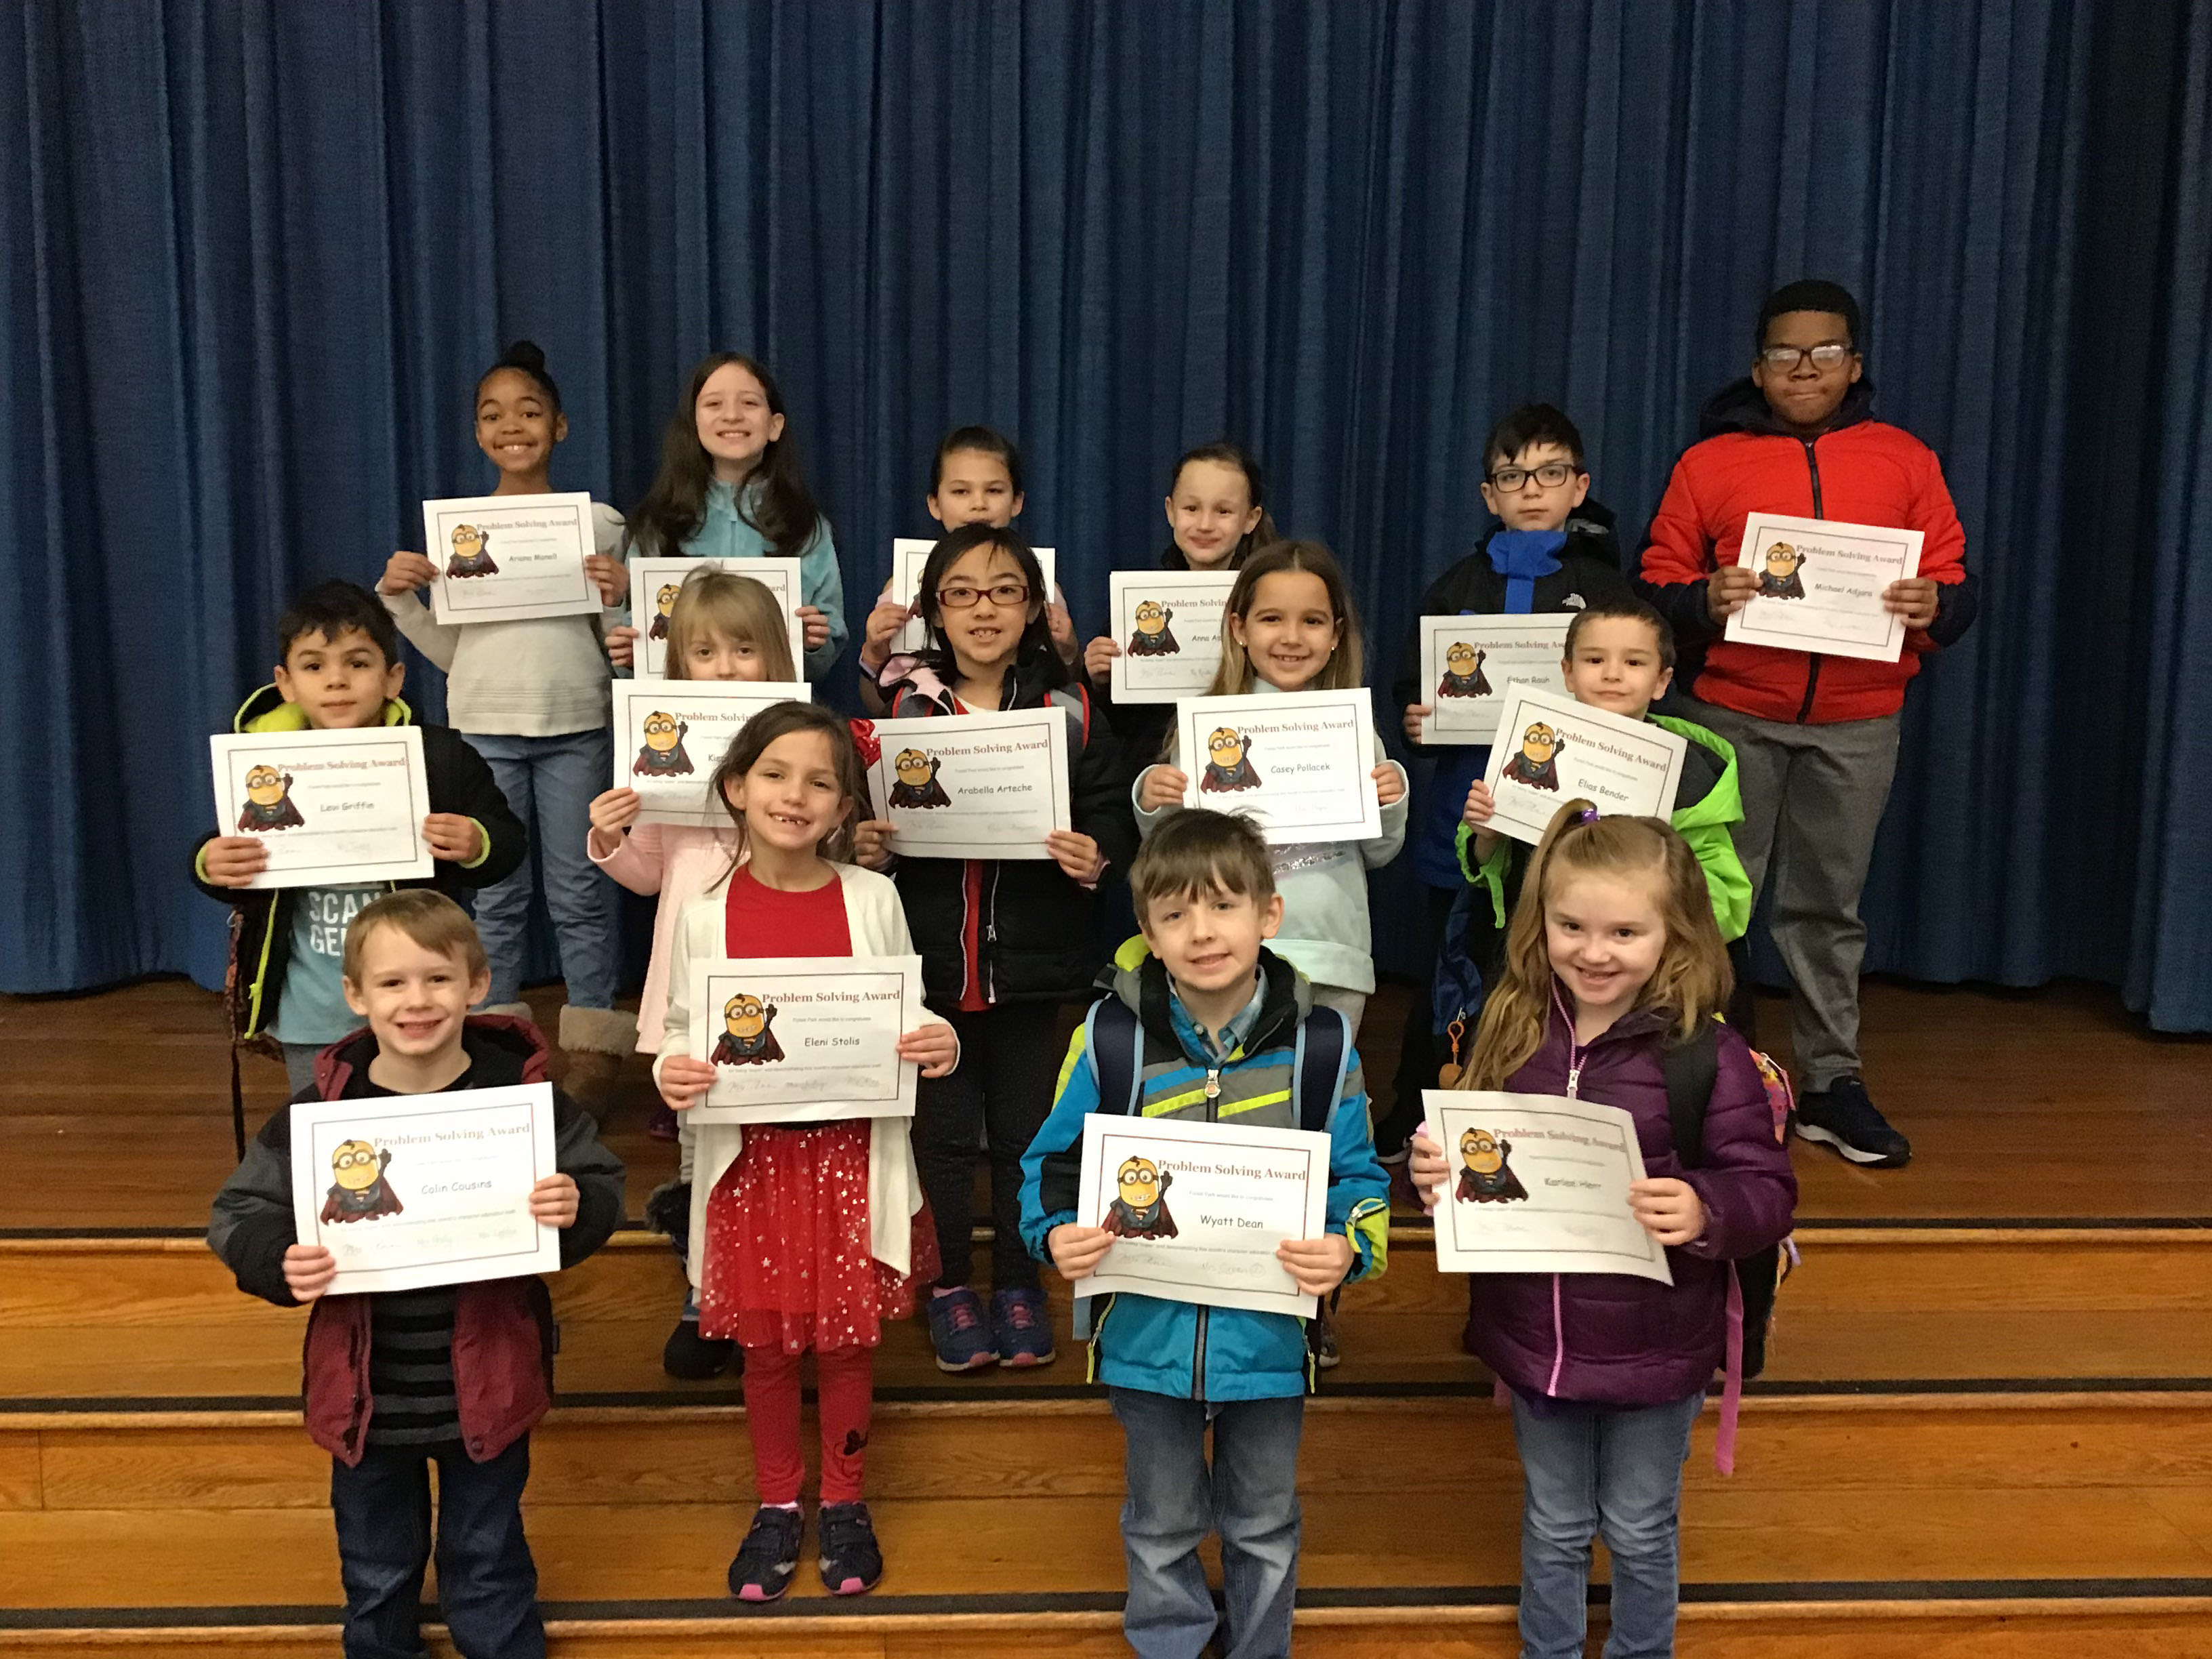 group of children stand with their award certificates